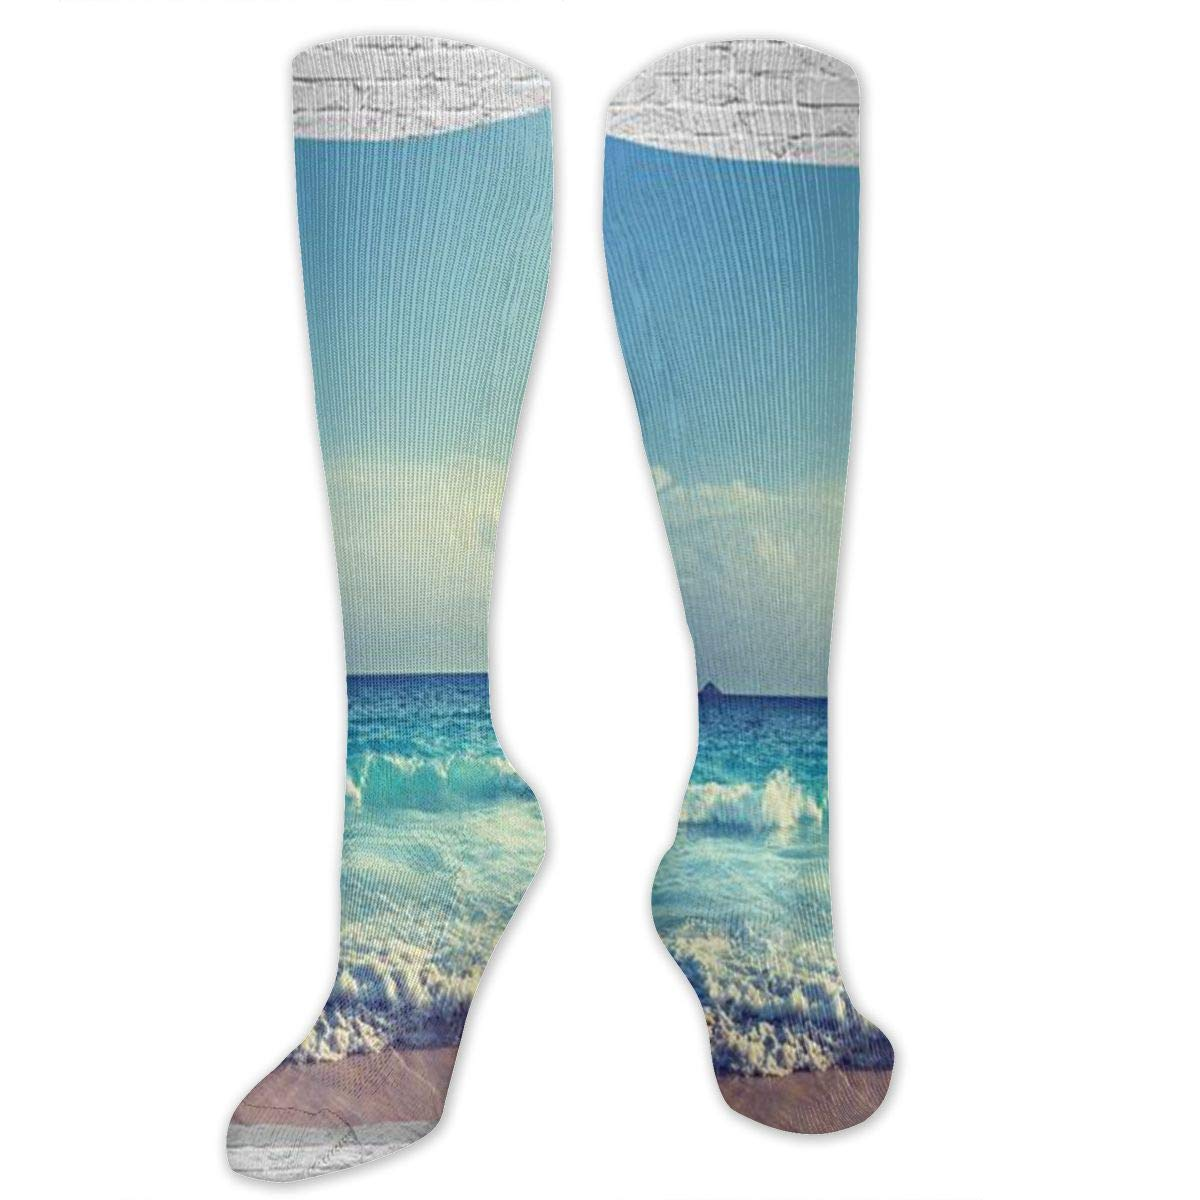 Chanwazibibiliu Ocean Waves Seychelles Island Beach in Sunset Mens Colorful Dress Socks Funky Men Multicolored Pattern Fashionable Fun Crew Cotton Socks